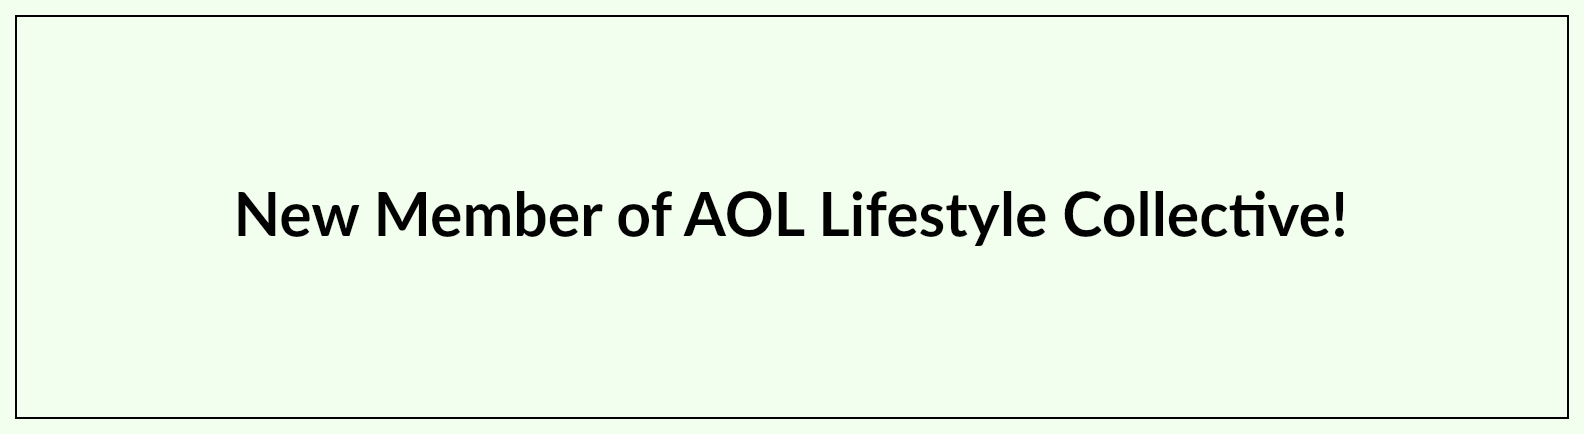 lifestyle-collective-aol